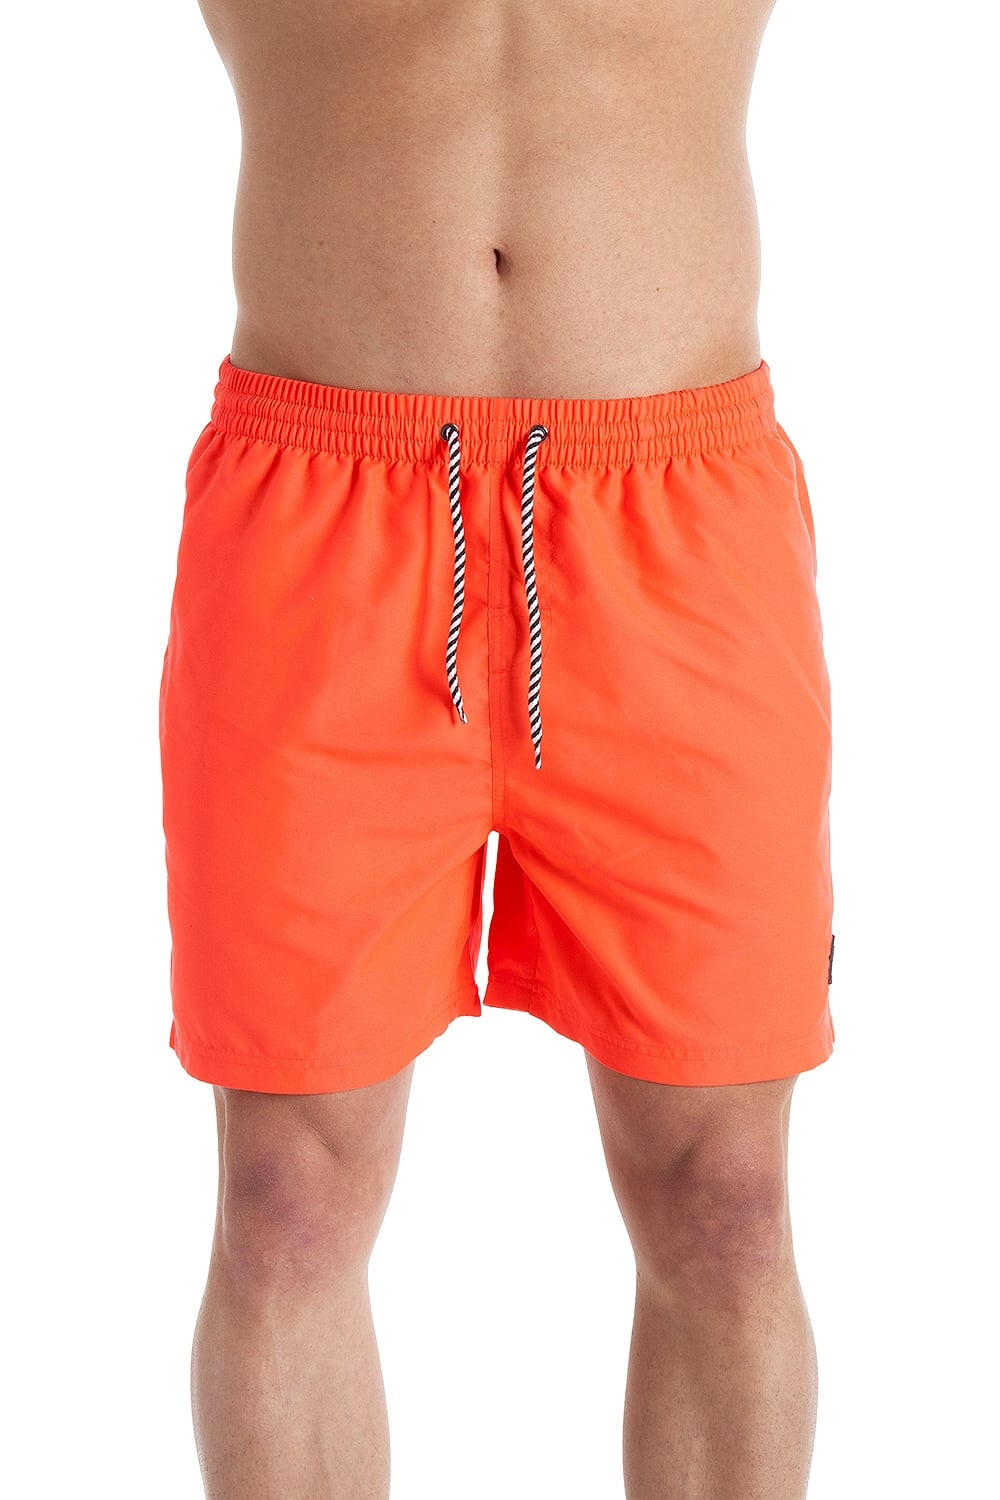 34e6b27d8e INDIAN AFFAIRS Mens Neon Coral Swimming Shorts